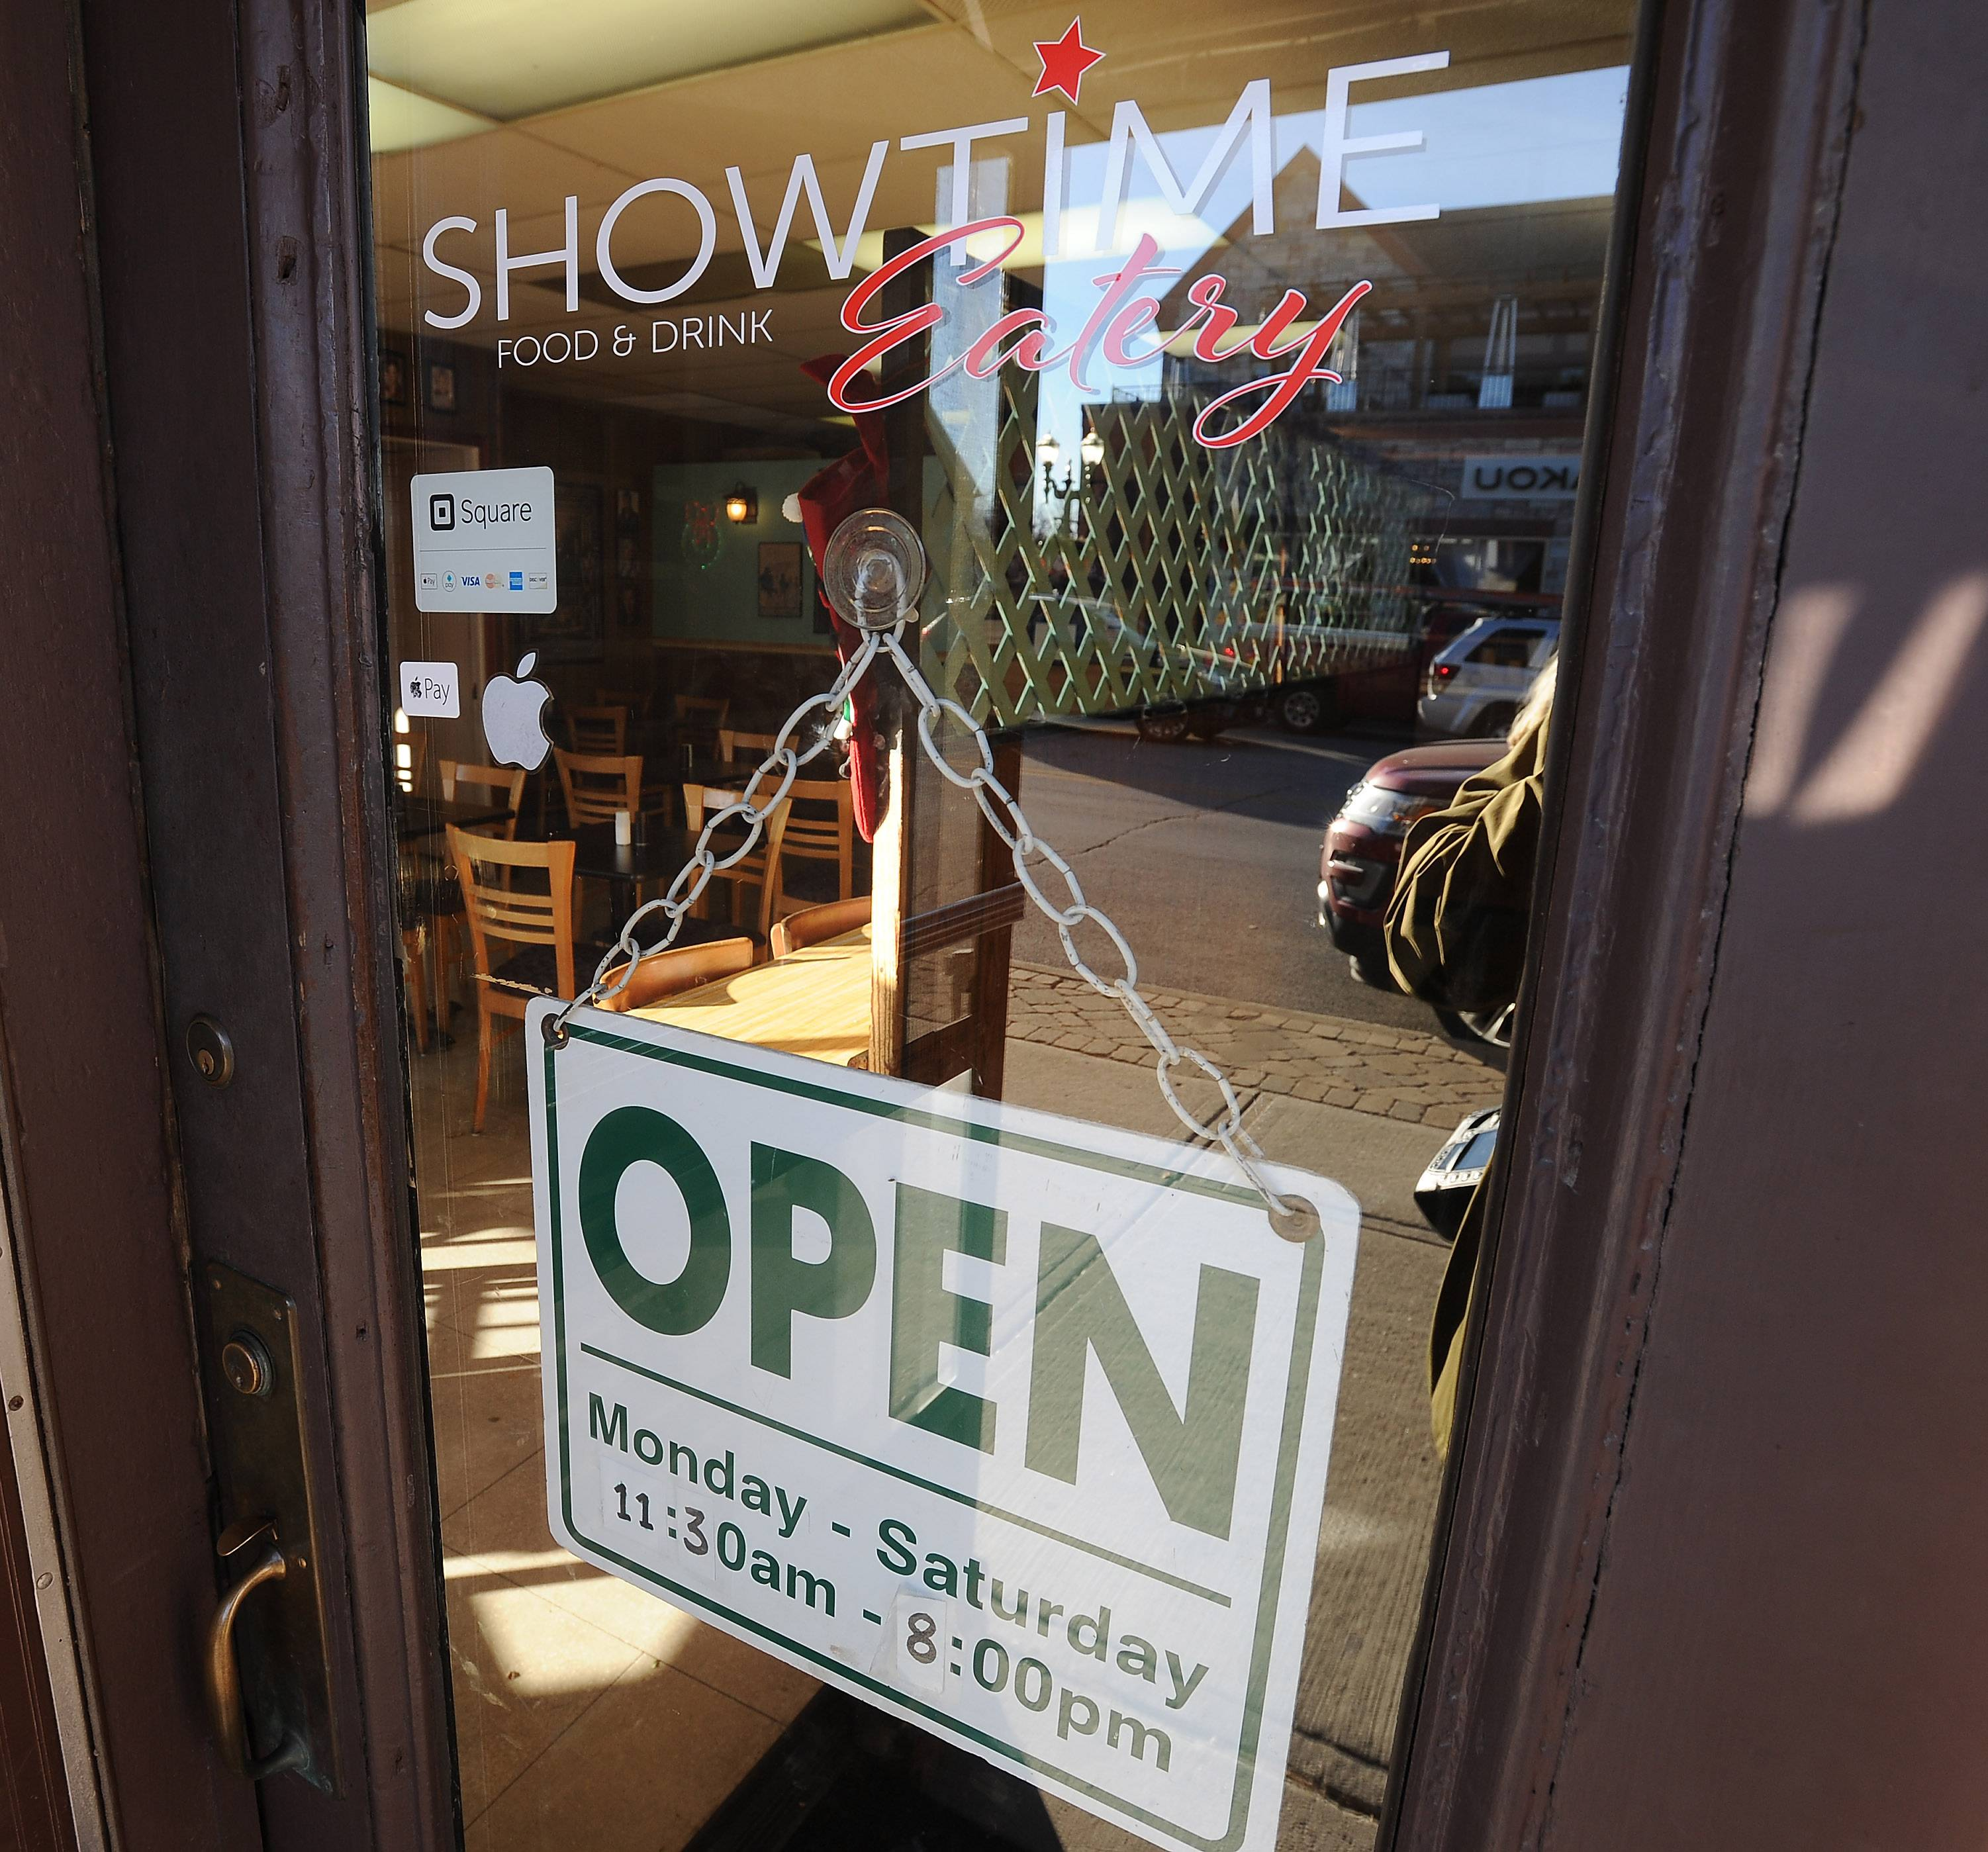 An online fundraising campaign similar to what the Catlow Theater in downtown Barrington successfully used for a new digital projector about five years ago has returned in an effort to renovate an adjacent restaurant, Showtime Eatery.